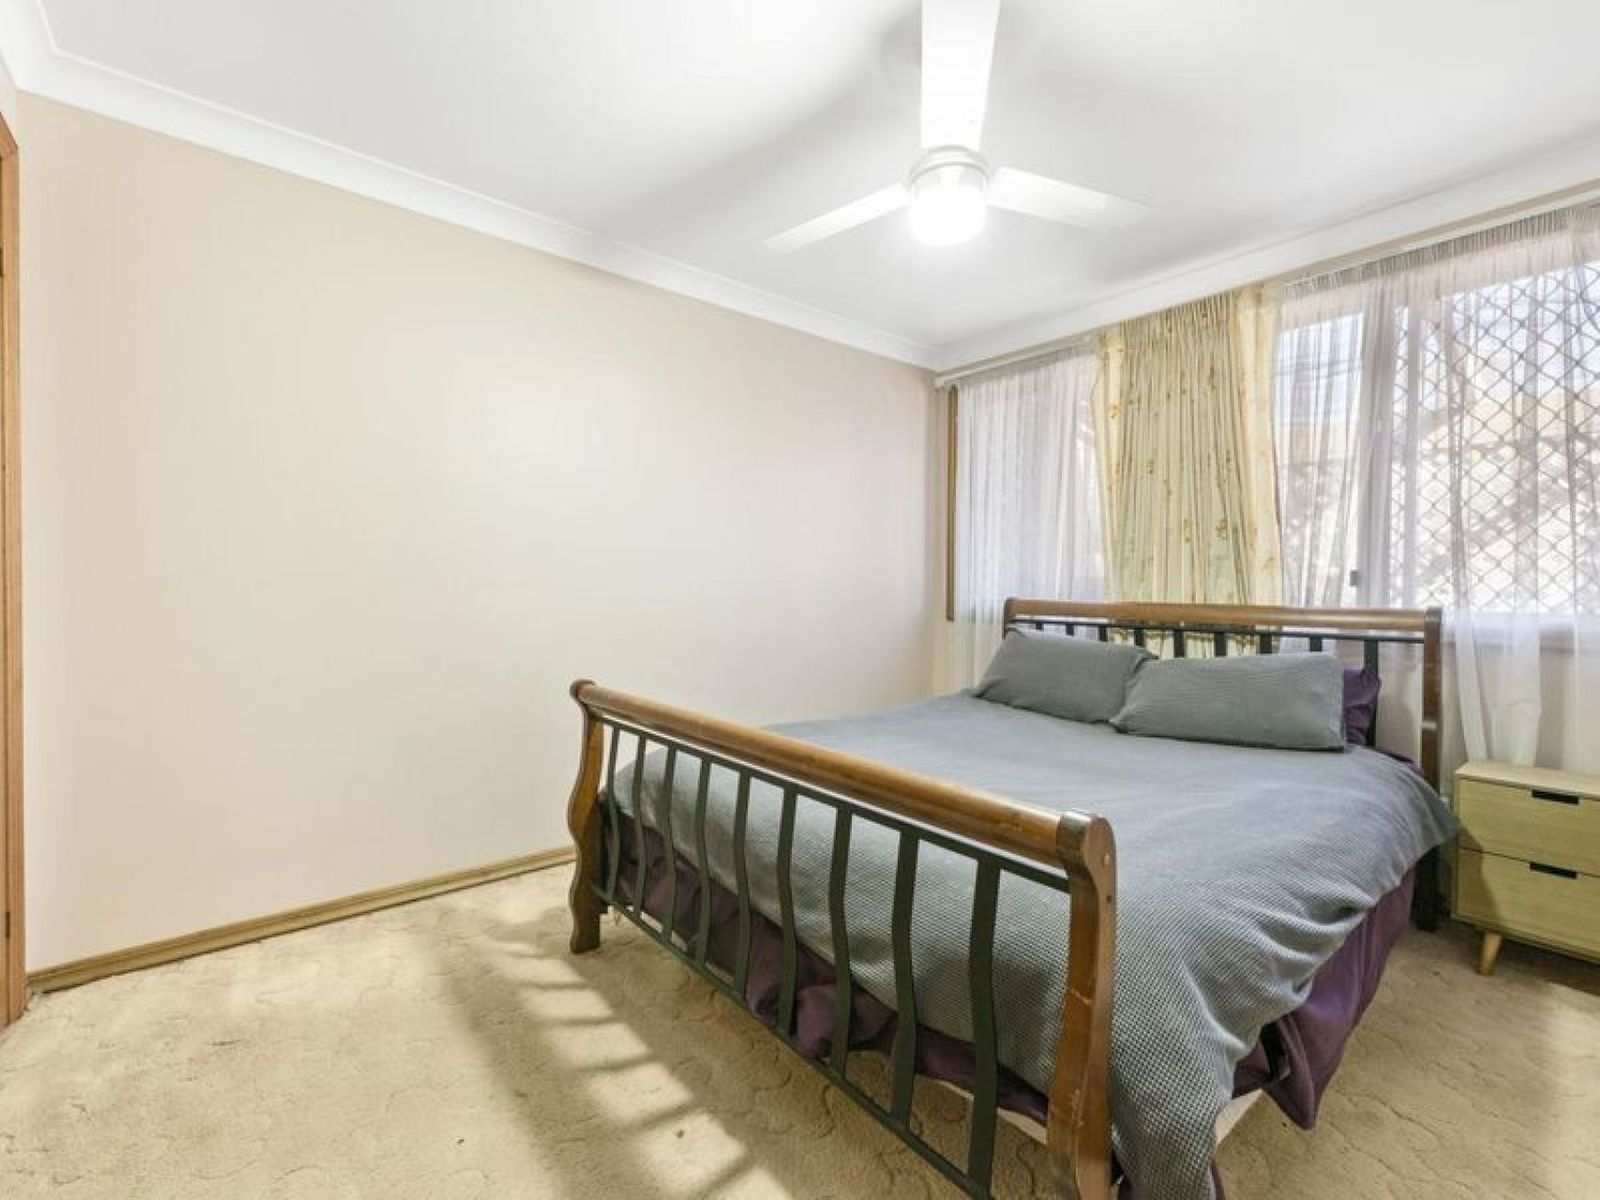 2/377 Alderley Street, South Toowoomba, QLD 4350